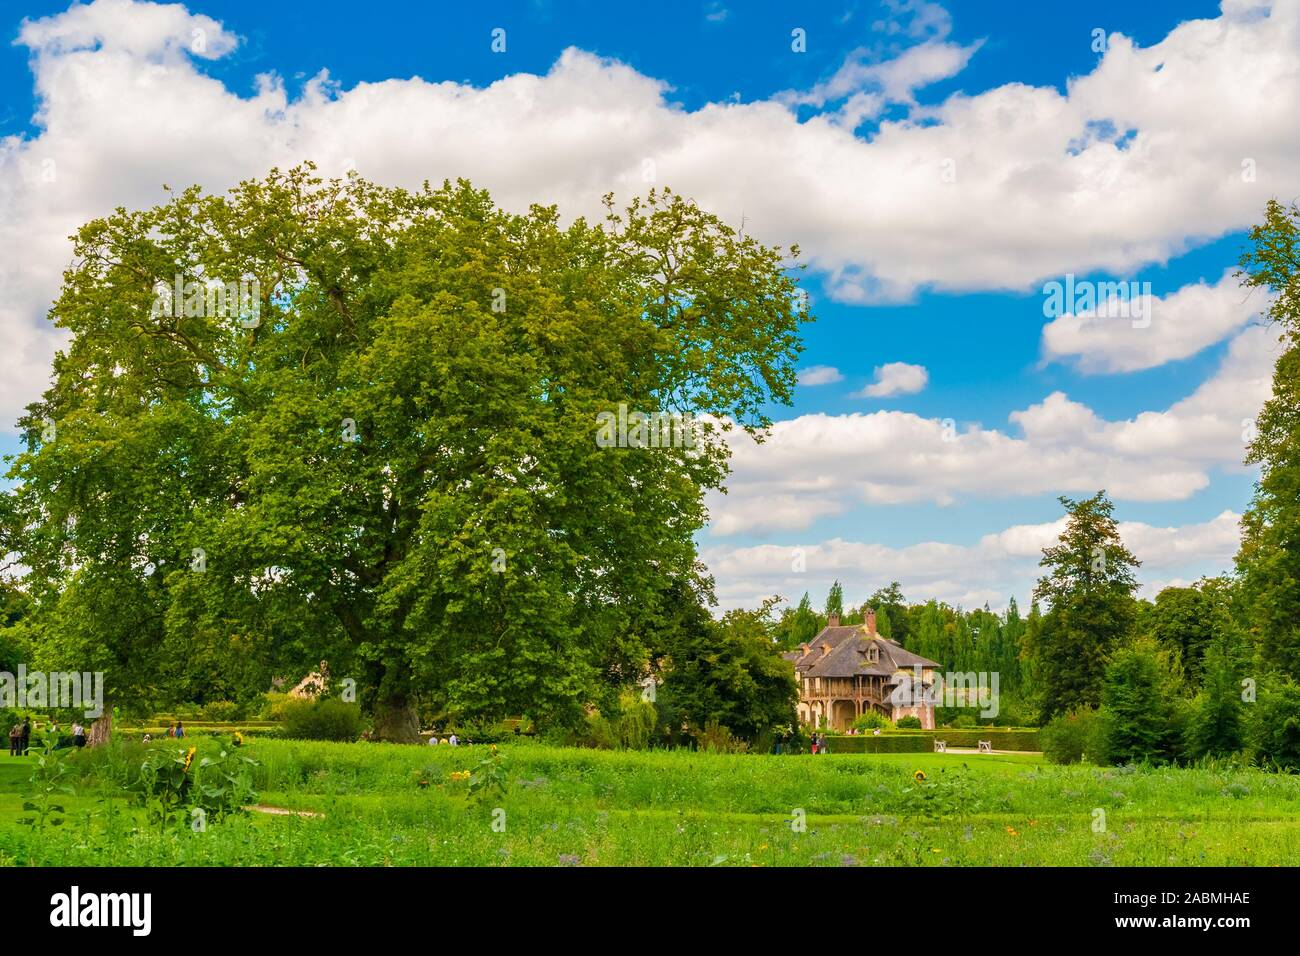 Lovely panoramic landscape view of a big, old tree in the Trianon garden of Versailles on a nice summer day with a blue sky. The lake and the Queen's... Stock Photo